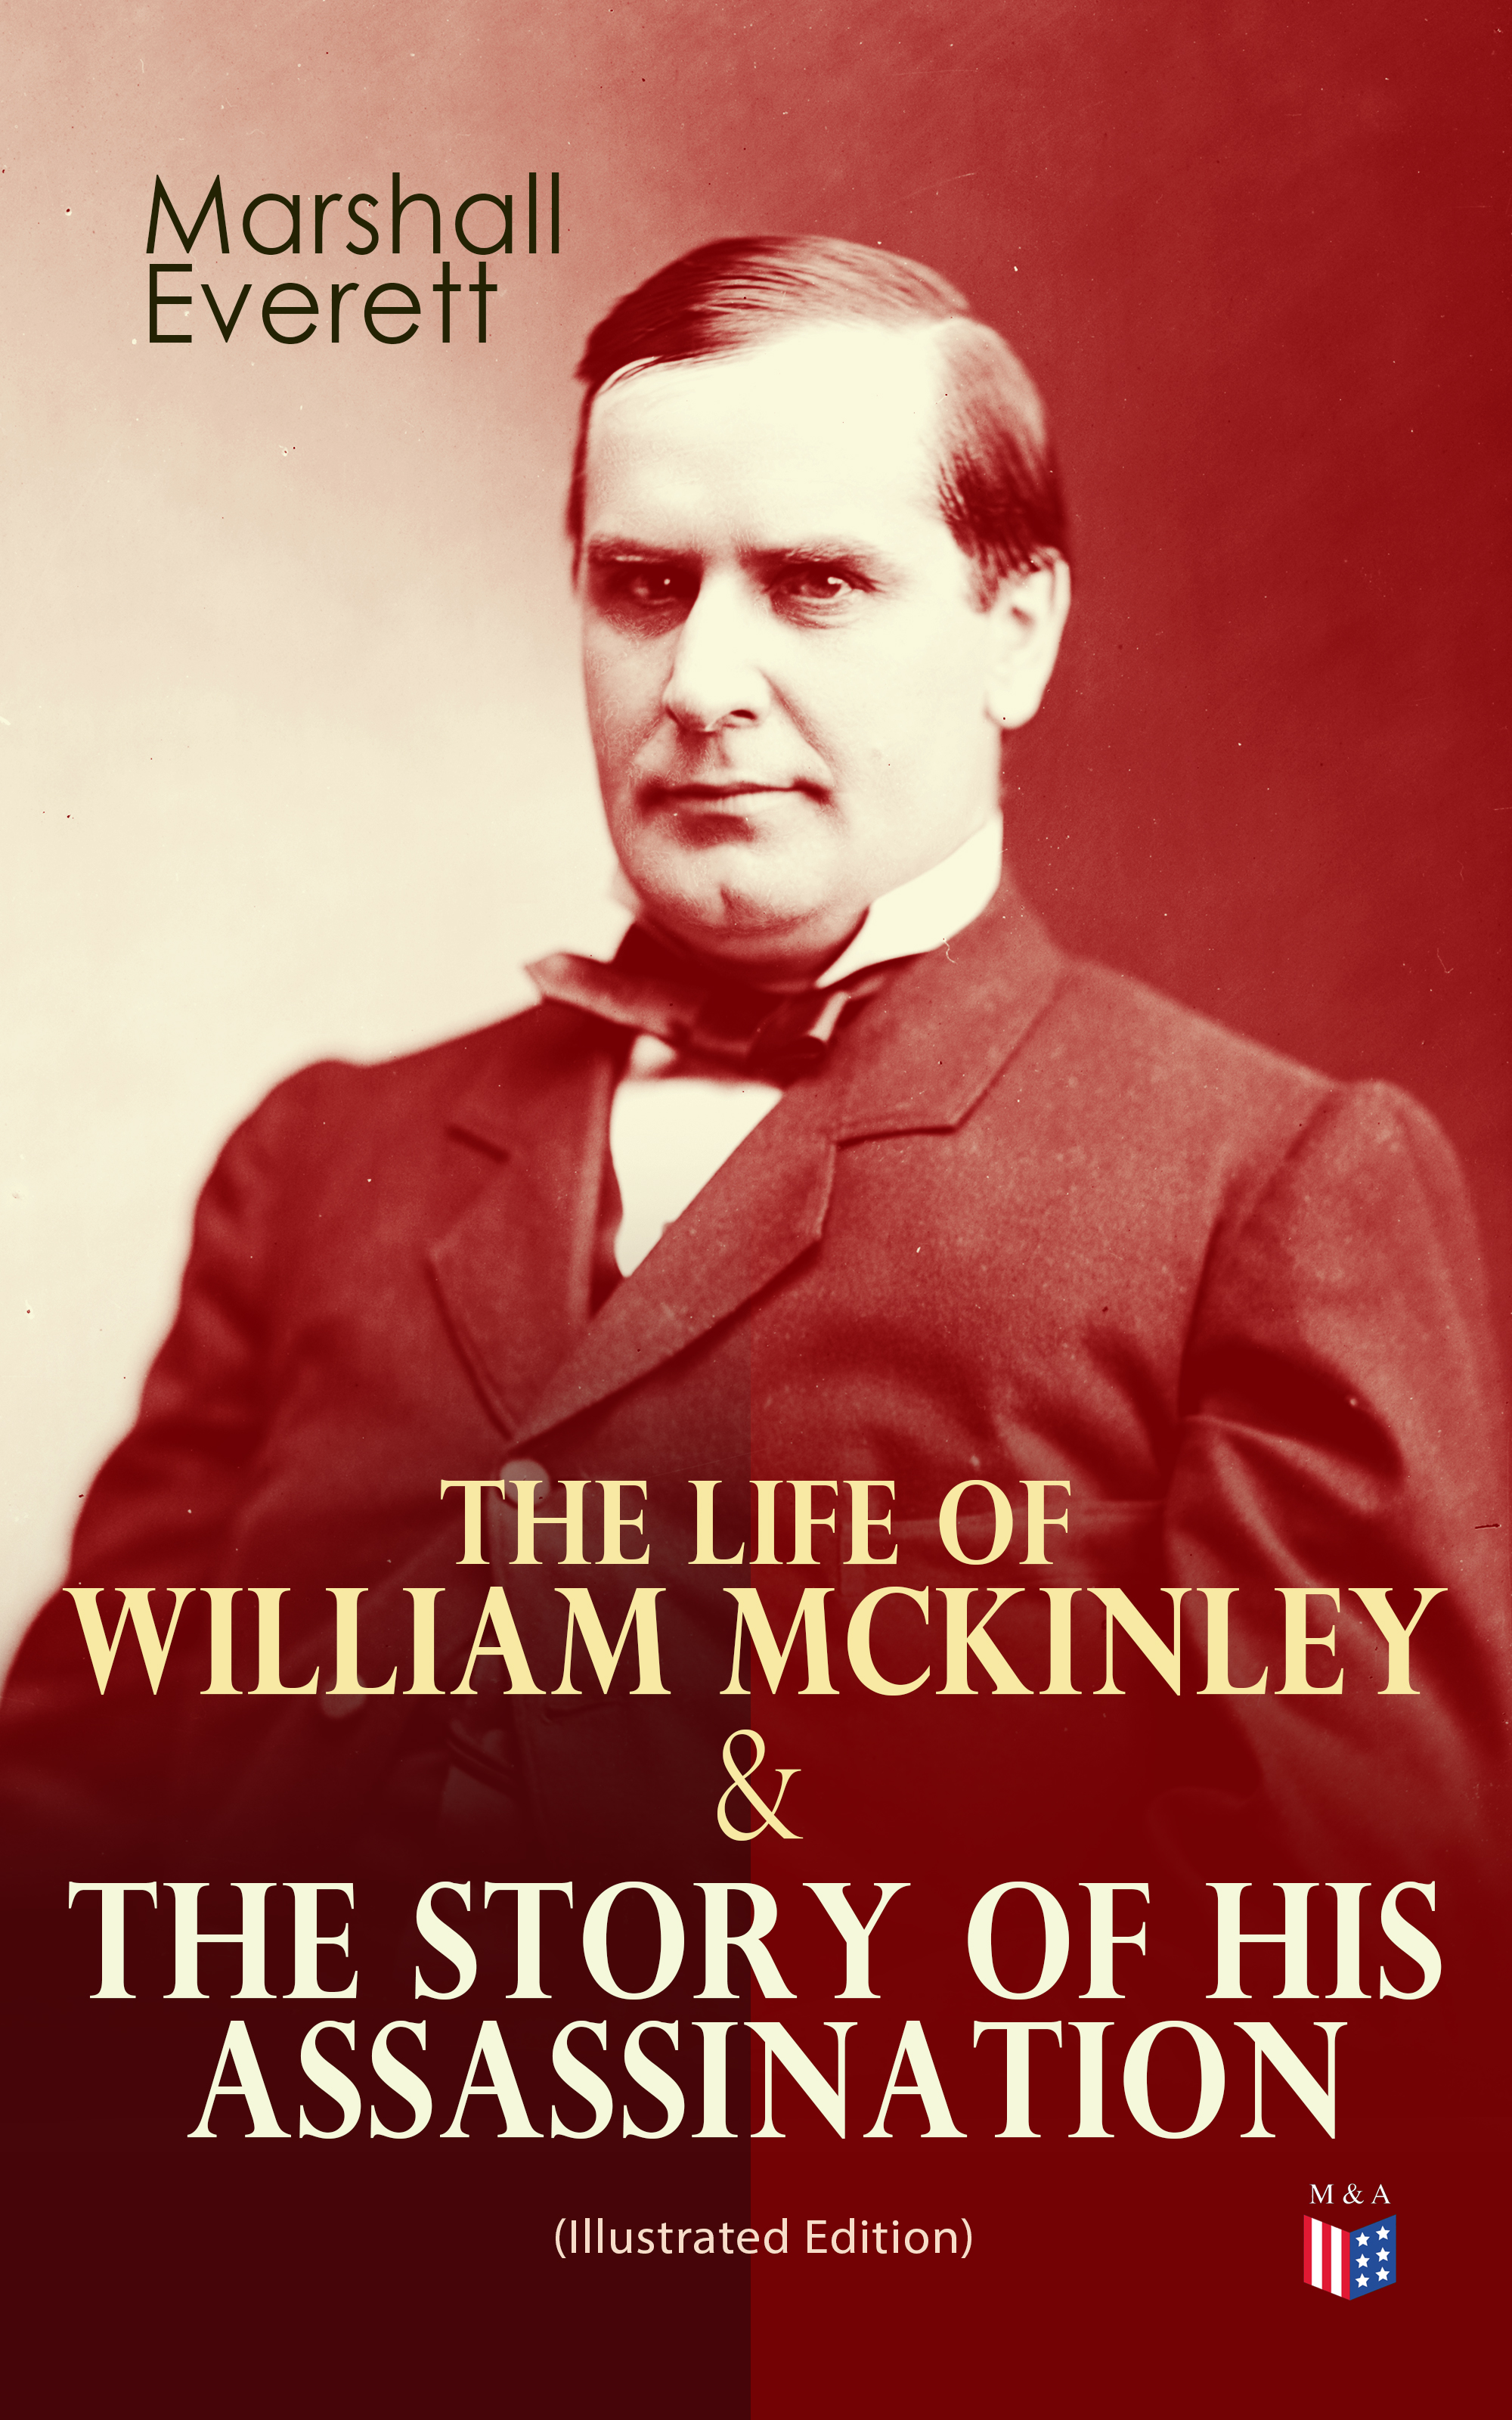 Фото - Everett Marshall The Life of William McKinley & The Story of His Assassination (Illustrated Edition) mr marshall william the rural economy of the southern counties